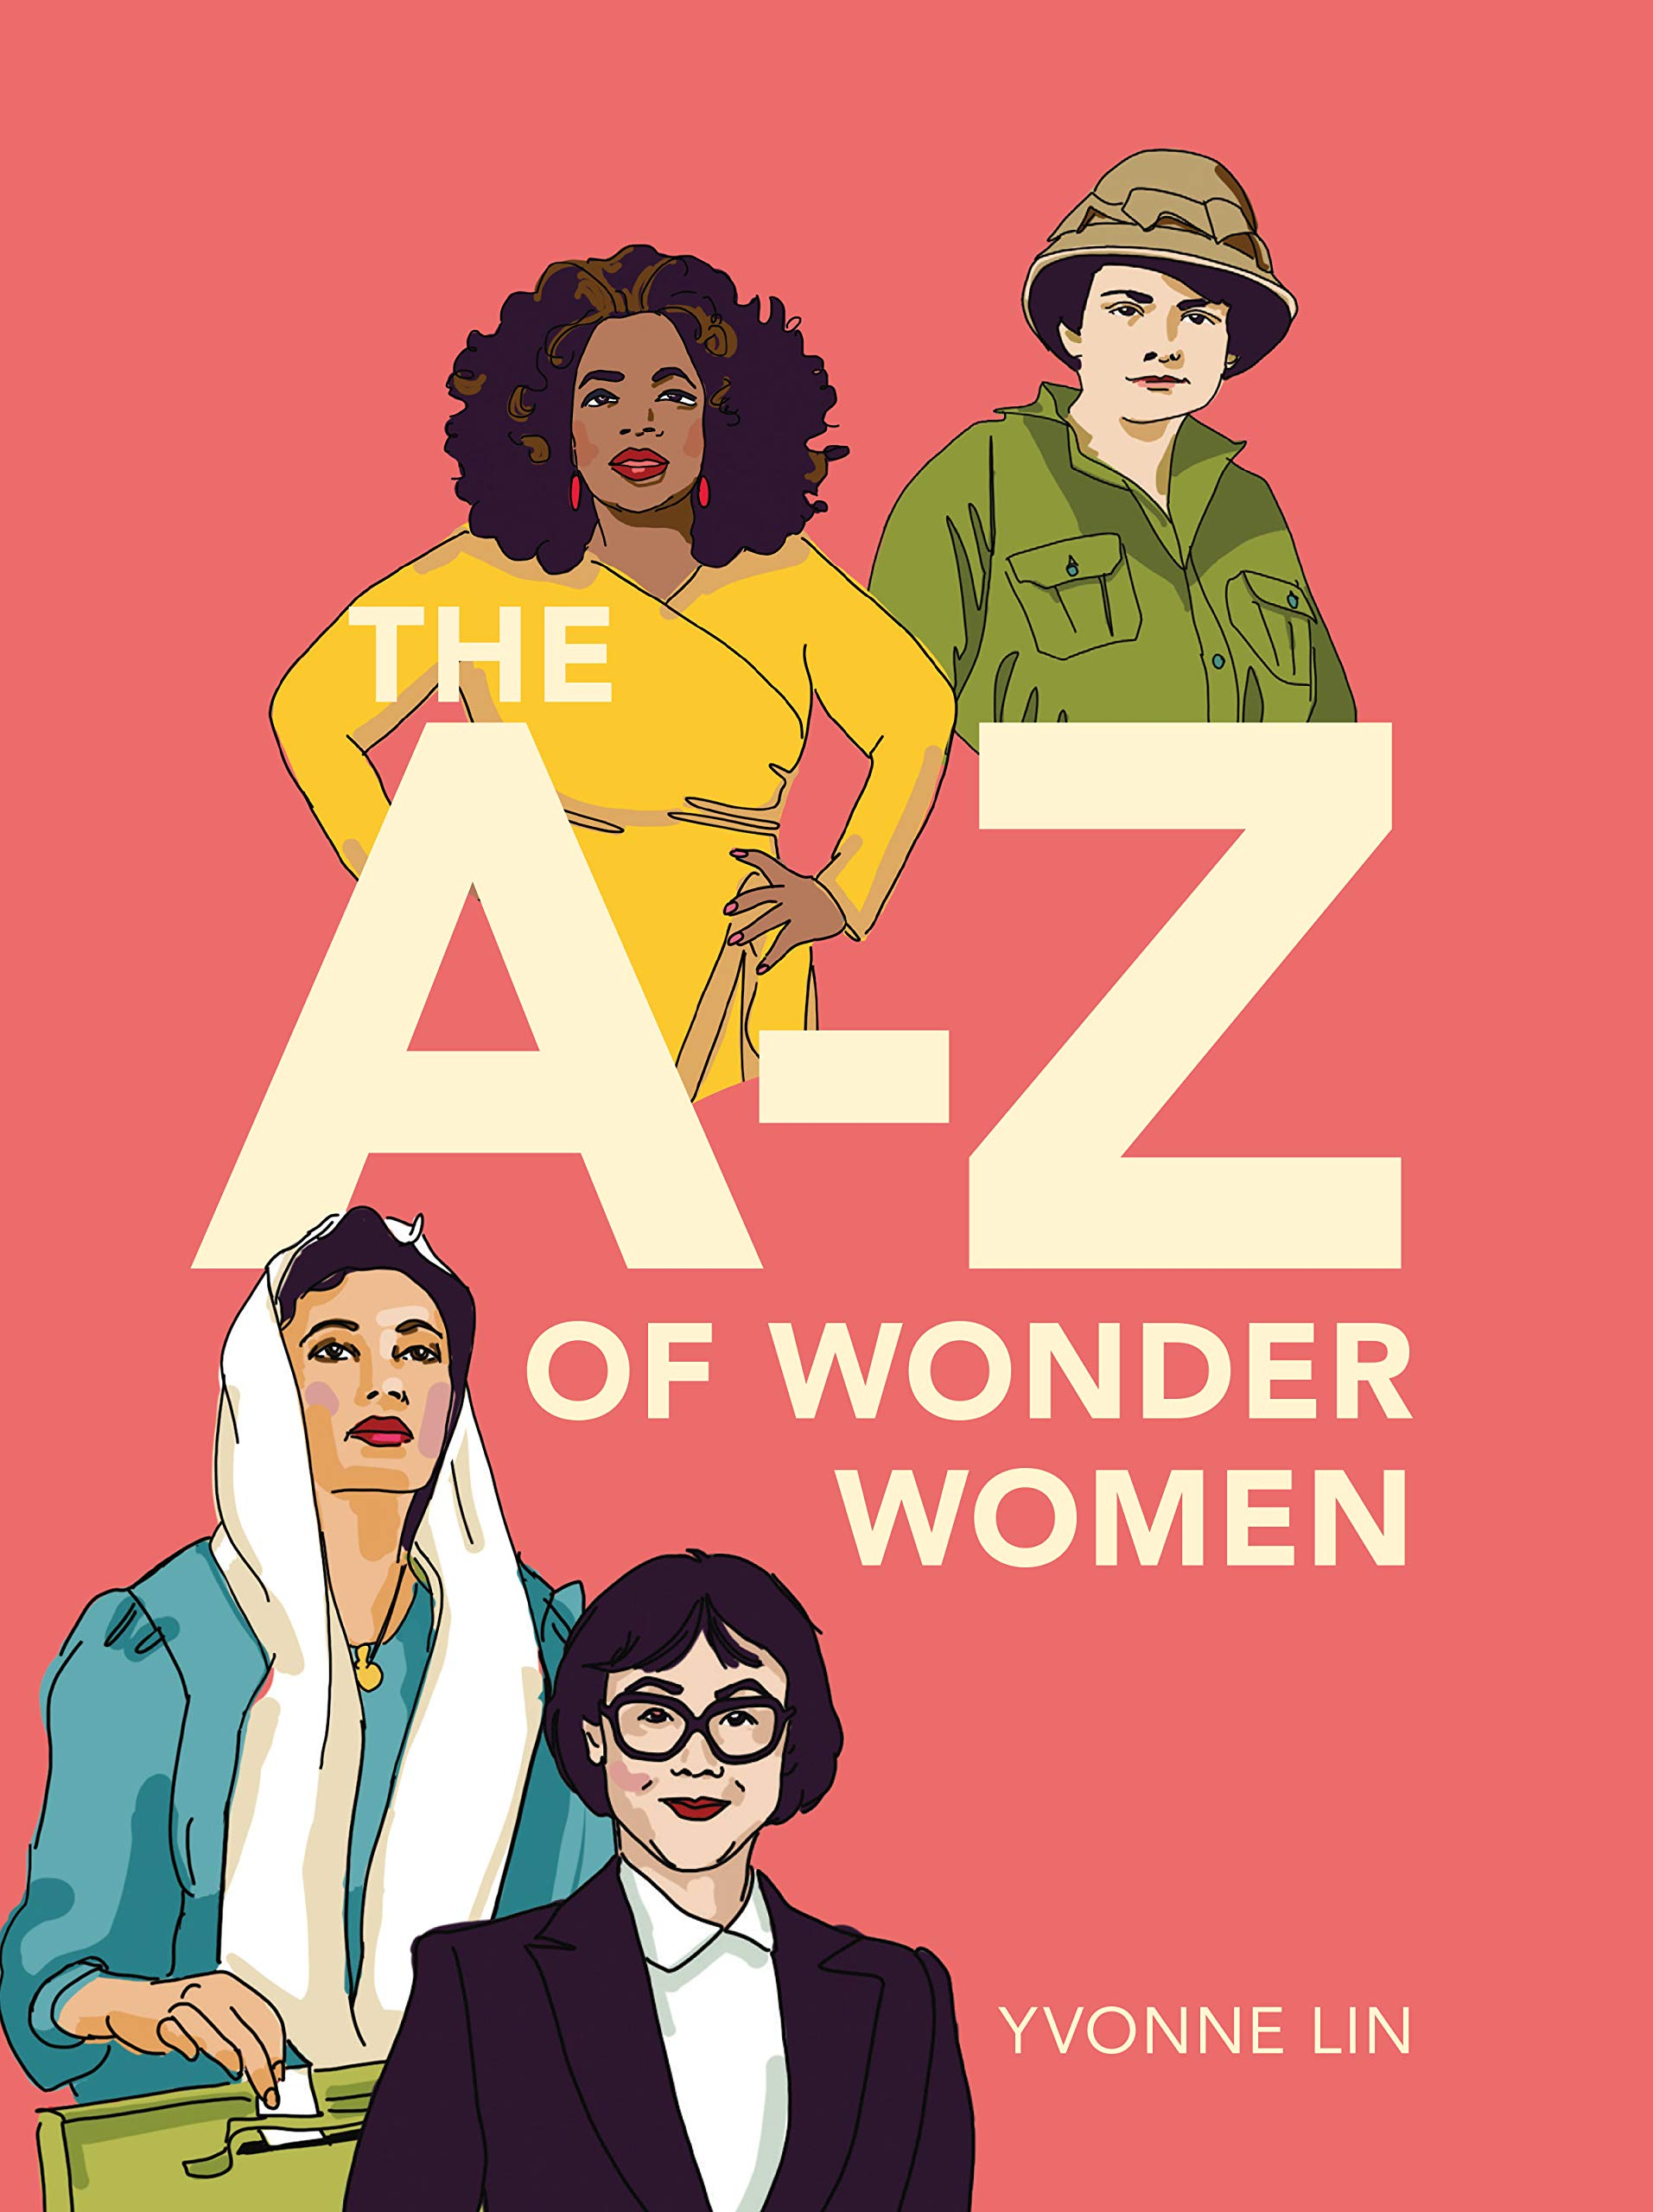 The A-Z of wonder women / Yvonne Lin